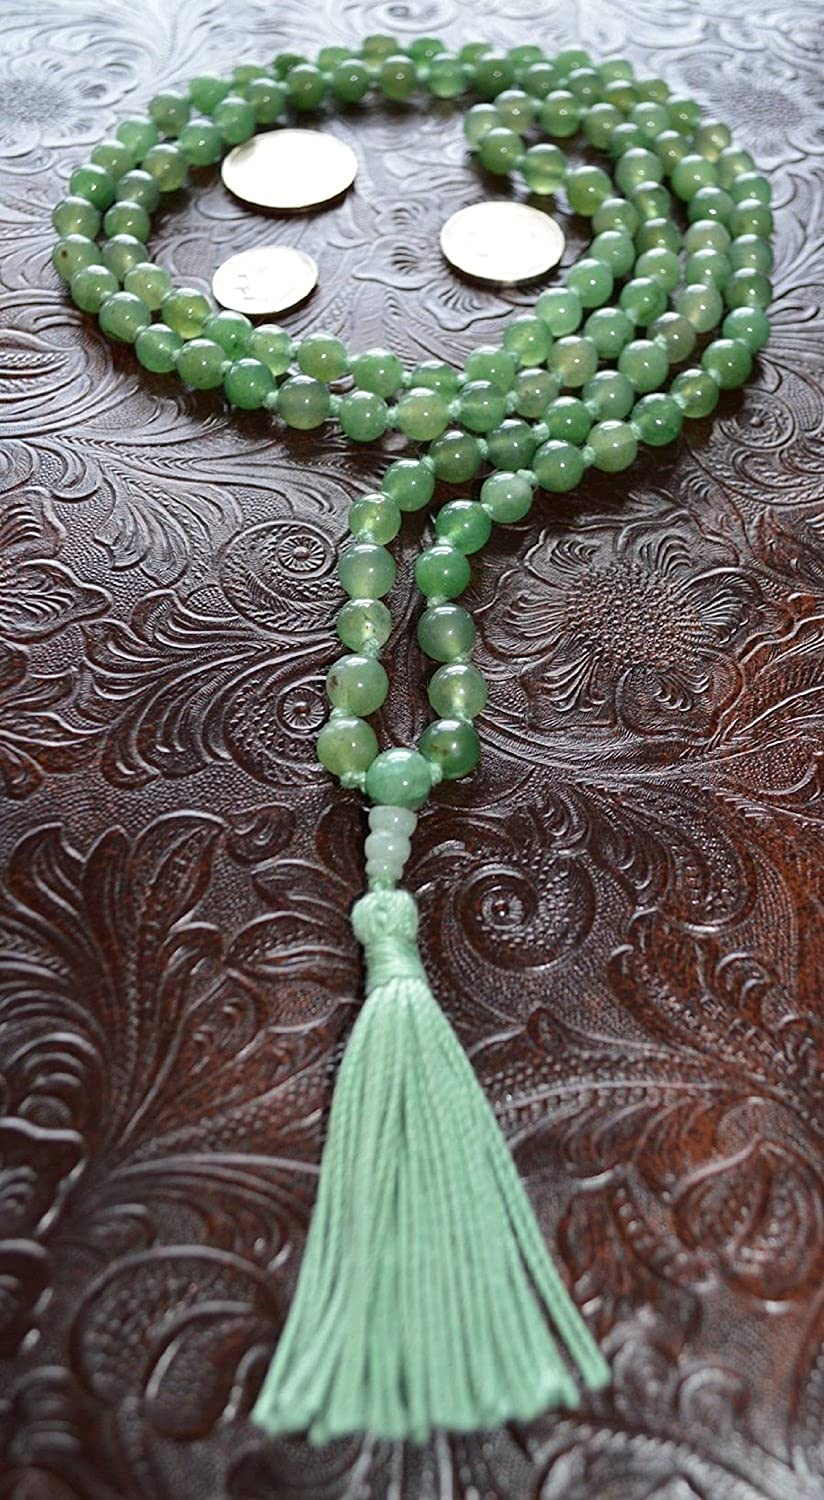 Jade green jade hand knotted japa mala 8mm prayer beads necklace. Energized 108+1 buddhist karma mala for nirvana chanting aum om awakening chakra - Free mala pouch included - USA Seller